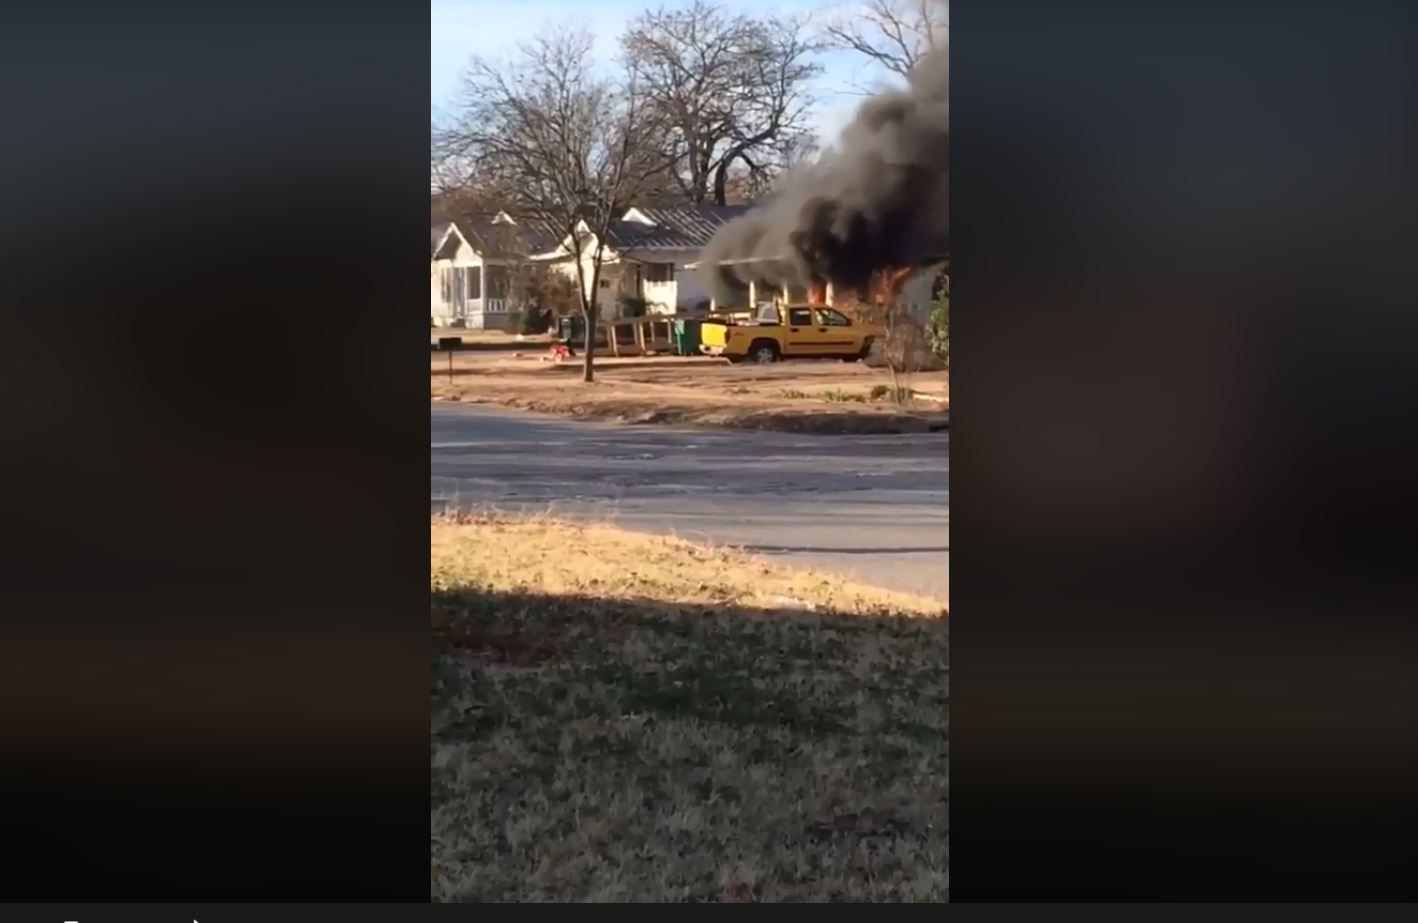 Two Texas police officers rescue disabled man, two others from burning home. (Courtesy Wendy Mace)<p></p>